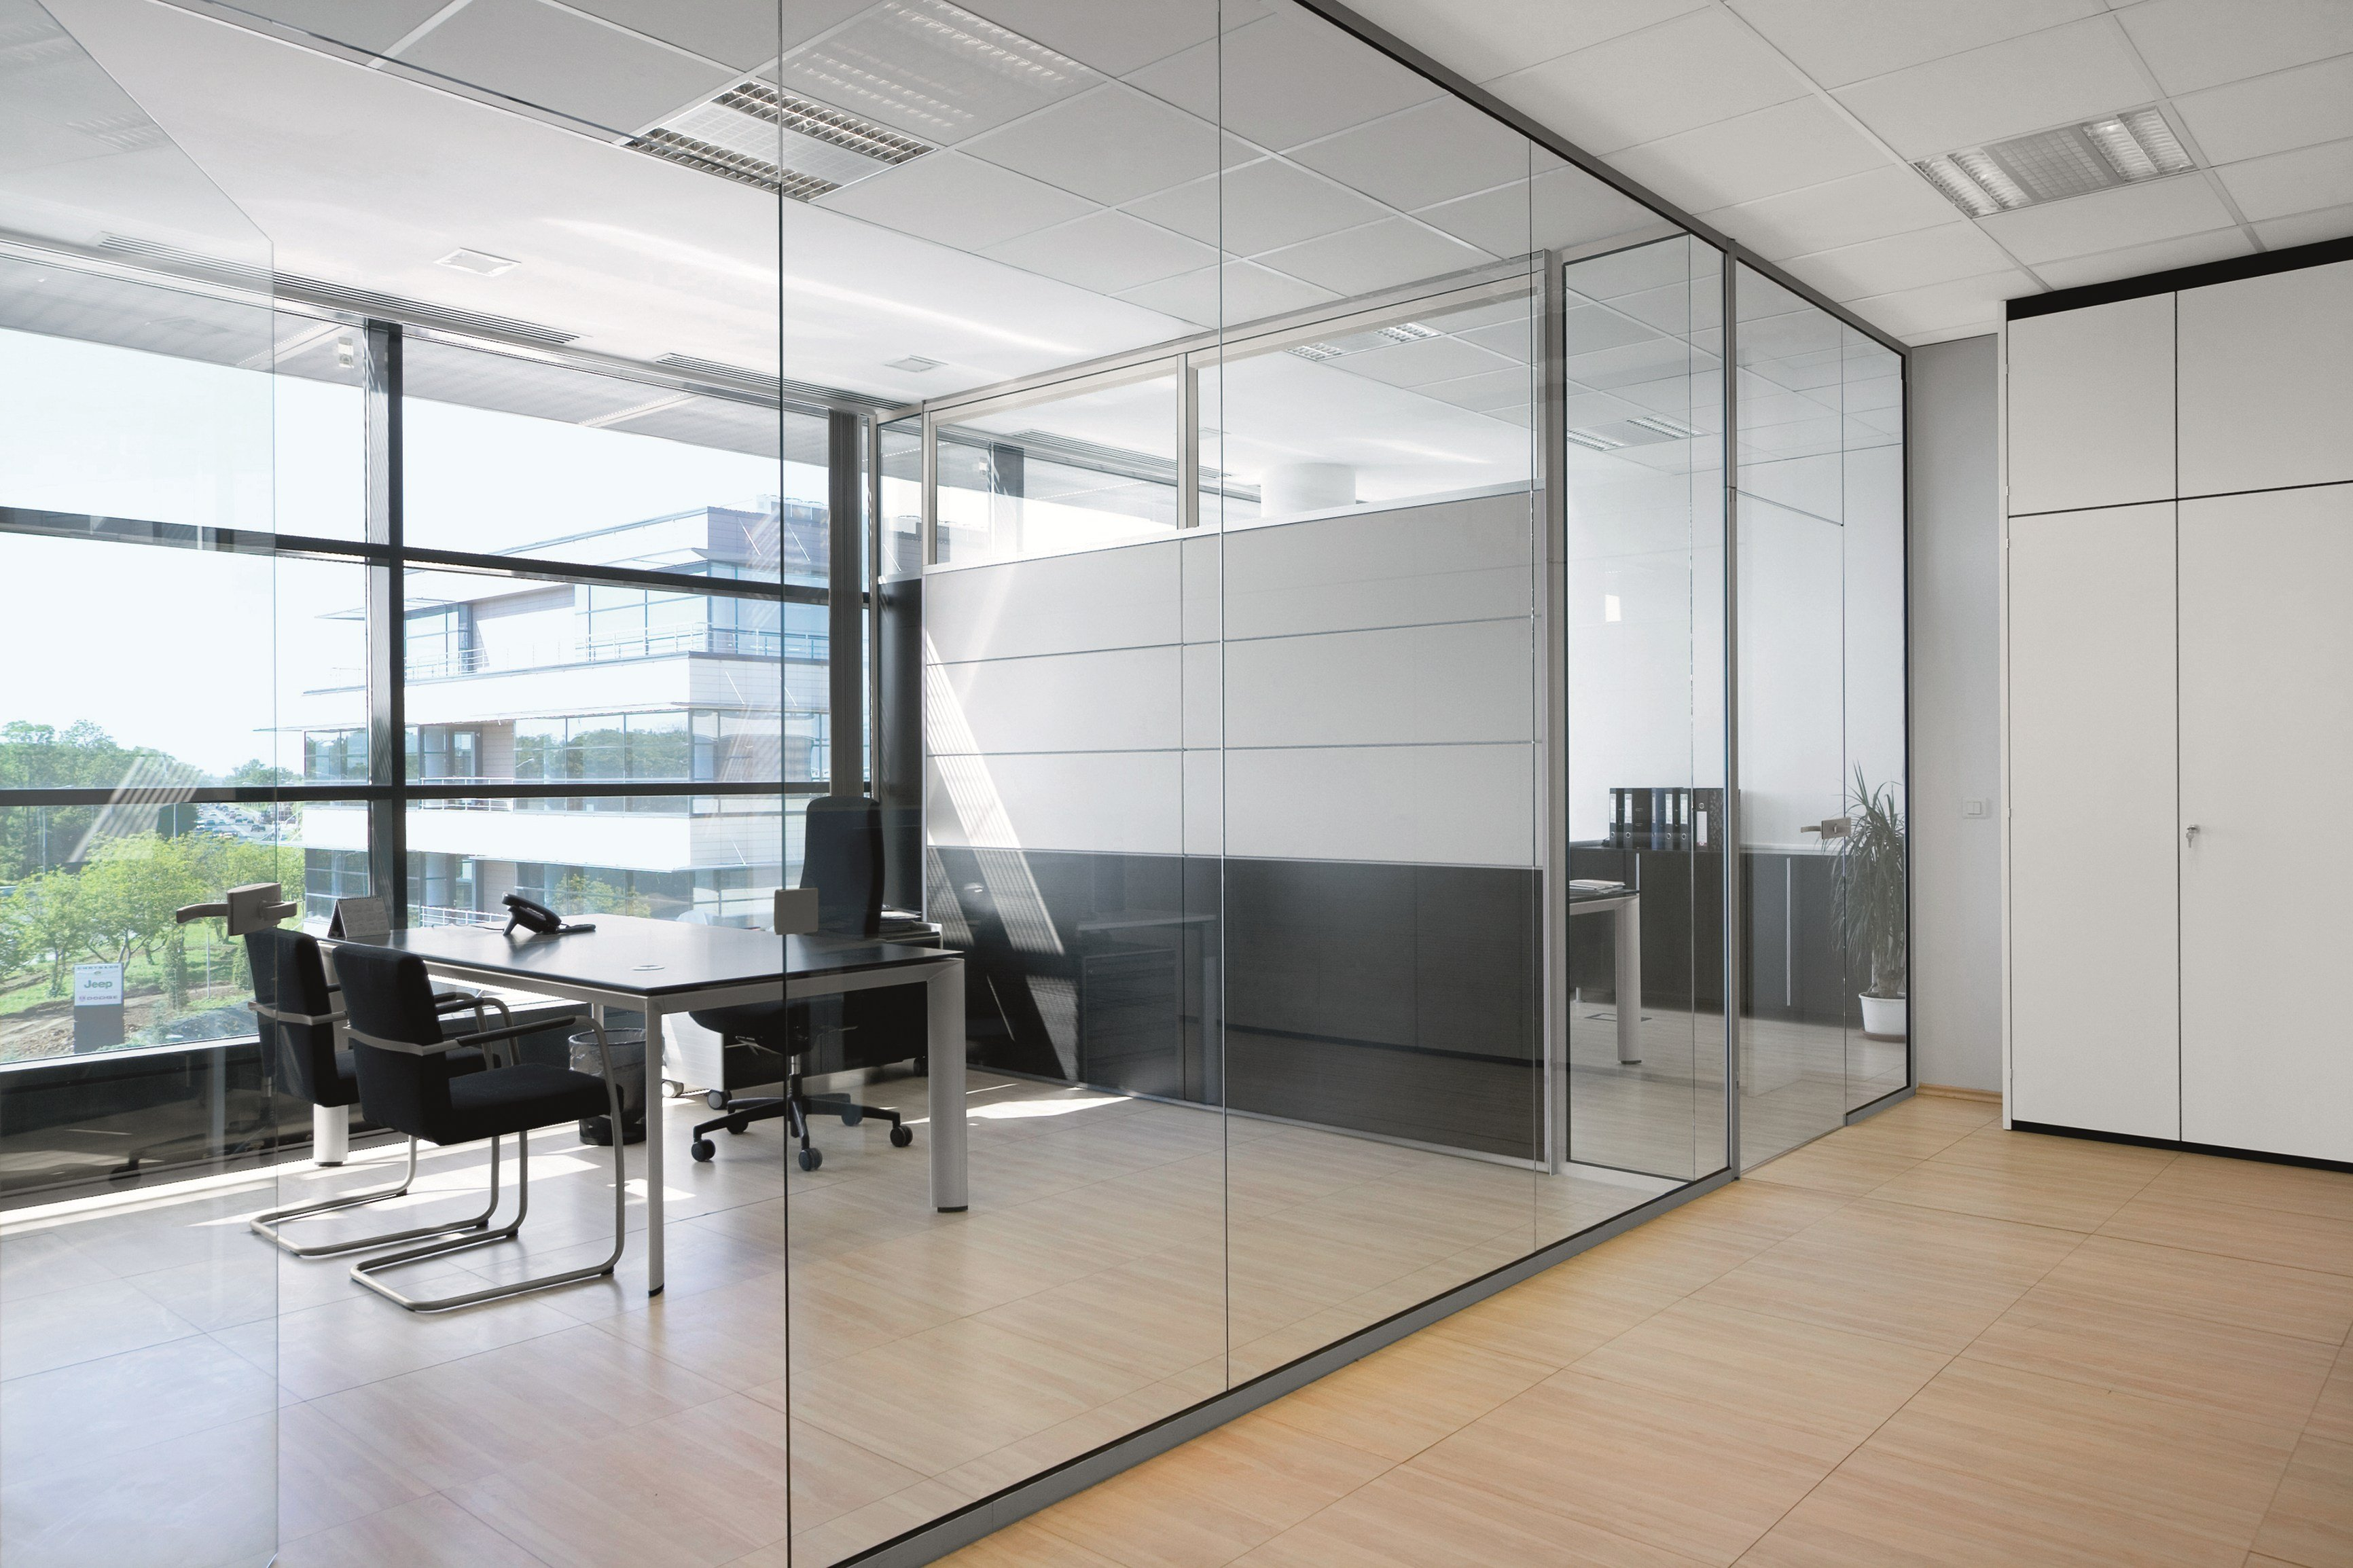 glass office wall. glass office wall archiproducts